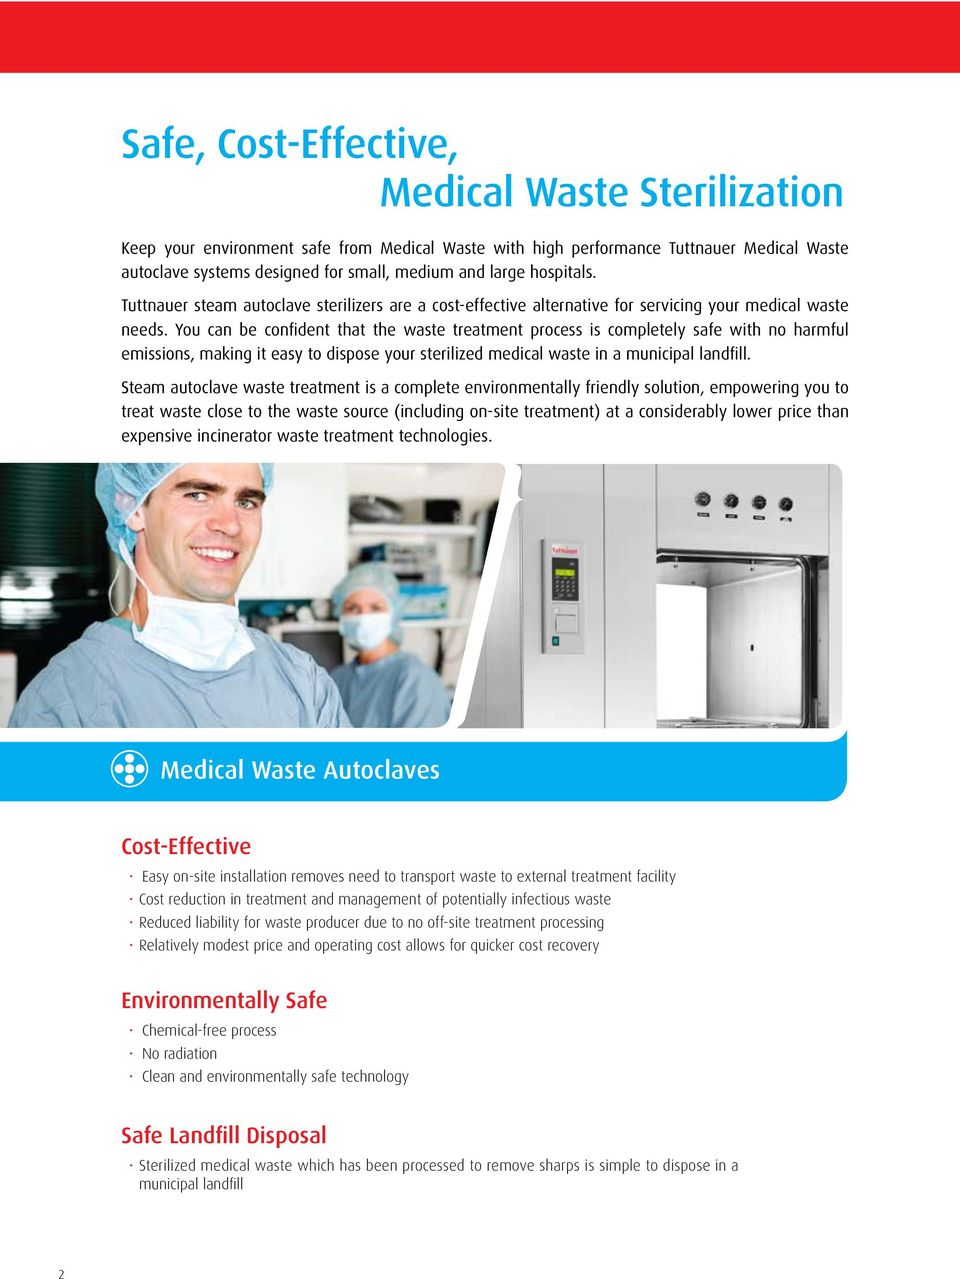 You can be confident that the waste treatment process is completely safe with no harmful emissions, making it easy to dispose your sterilized medical waste in a municipal landfill.